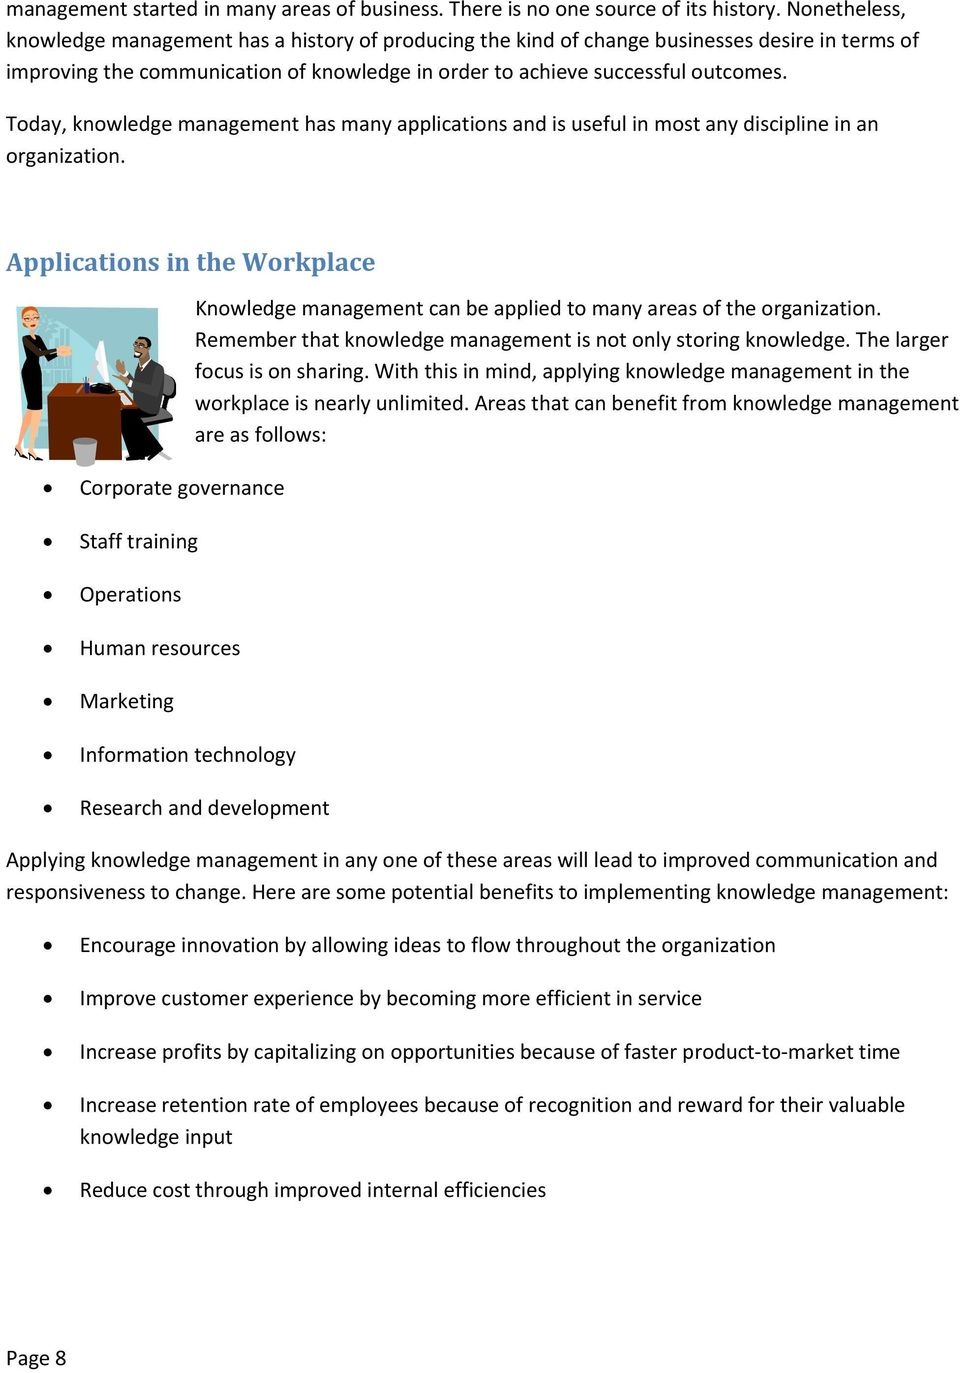 Tday, knwledge management has many applicatins and is useful in mst any discipline in an rganizatin. Applicatins in the Wrkplace Knwledge management can be applied t many areas f the rganizatin.